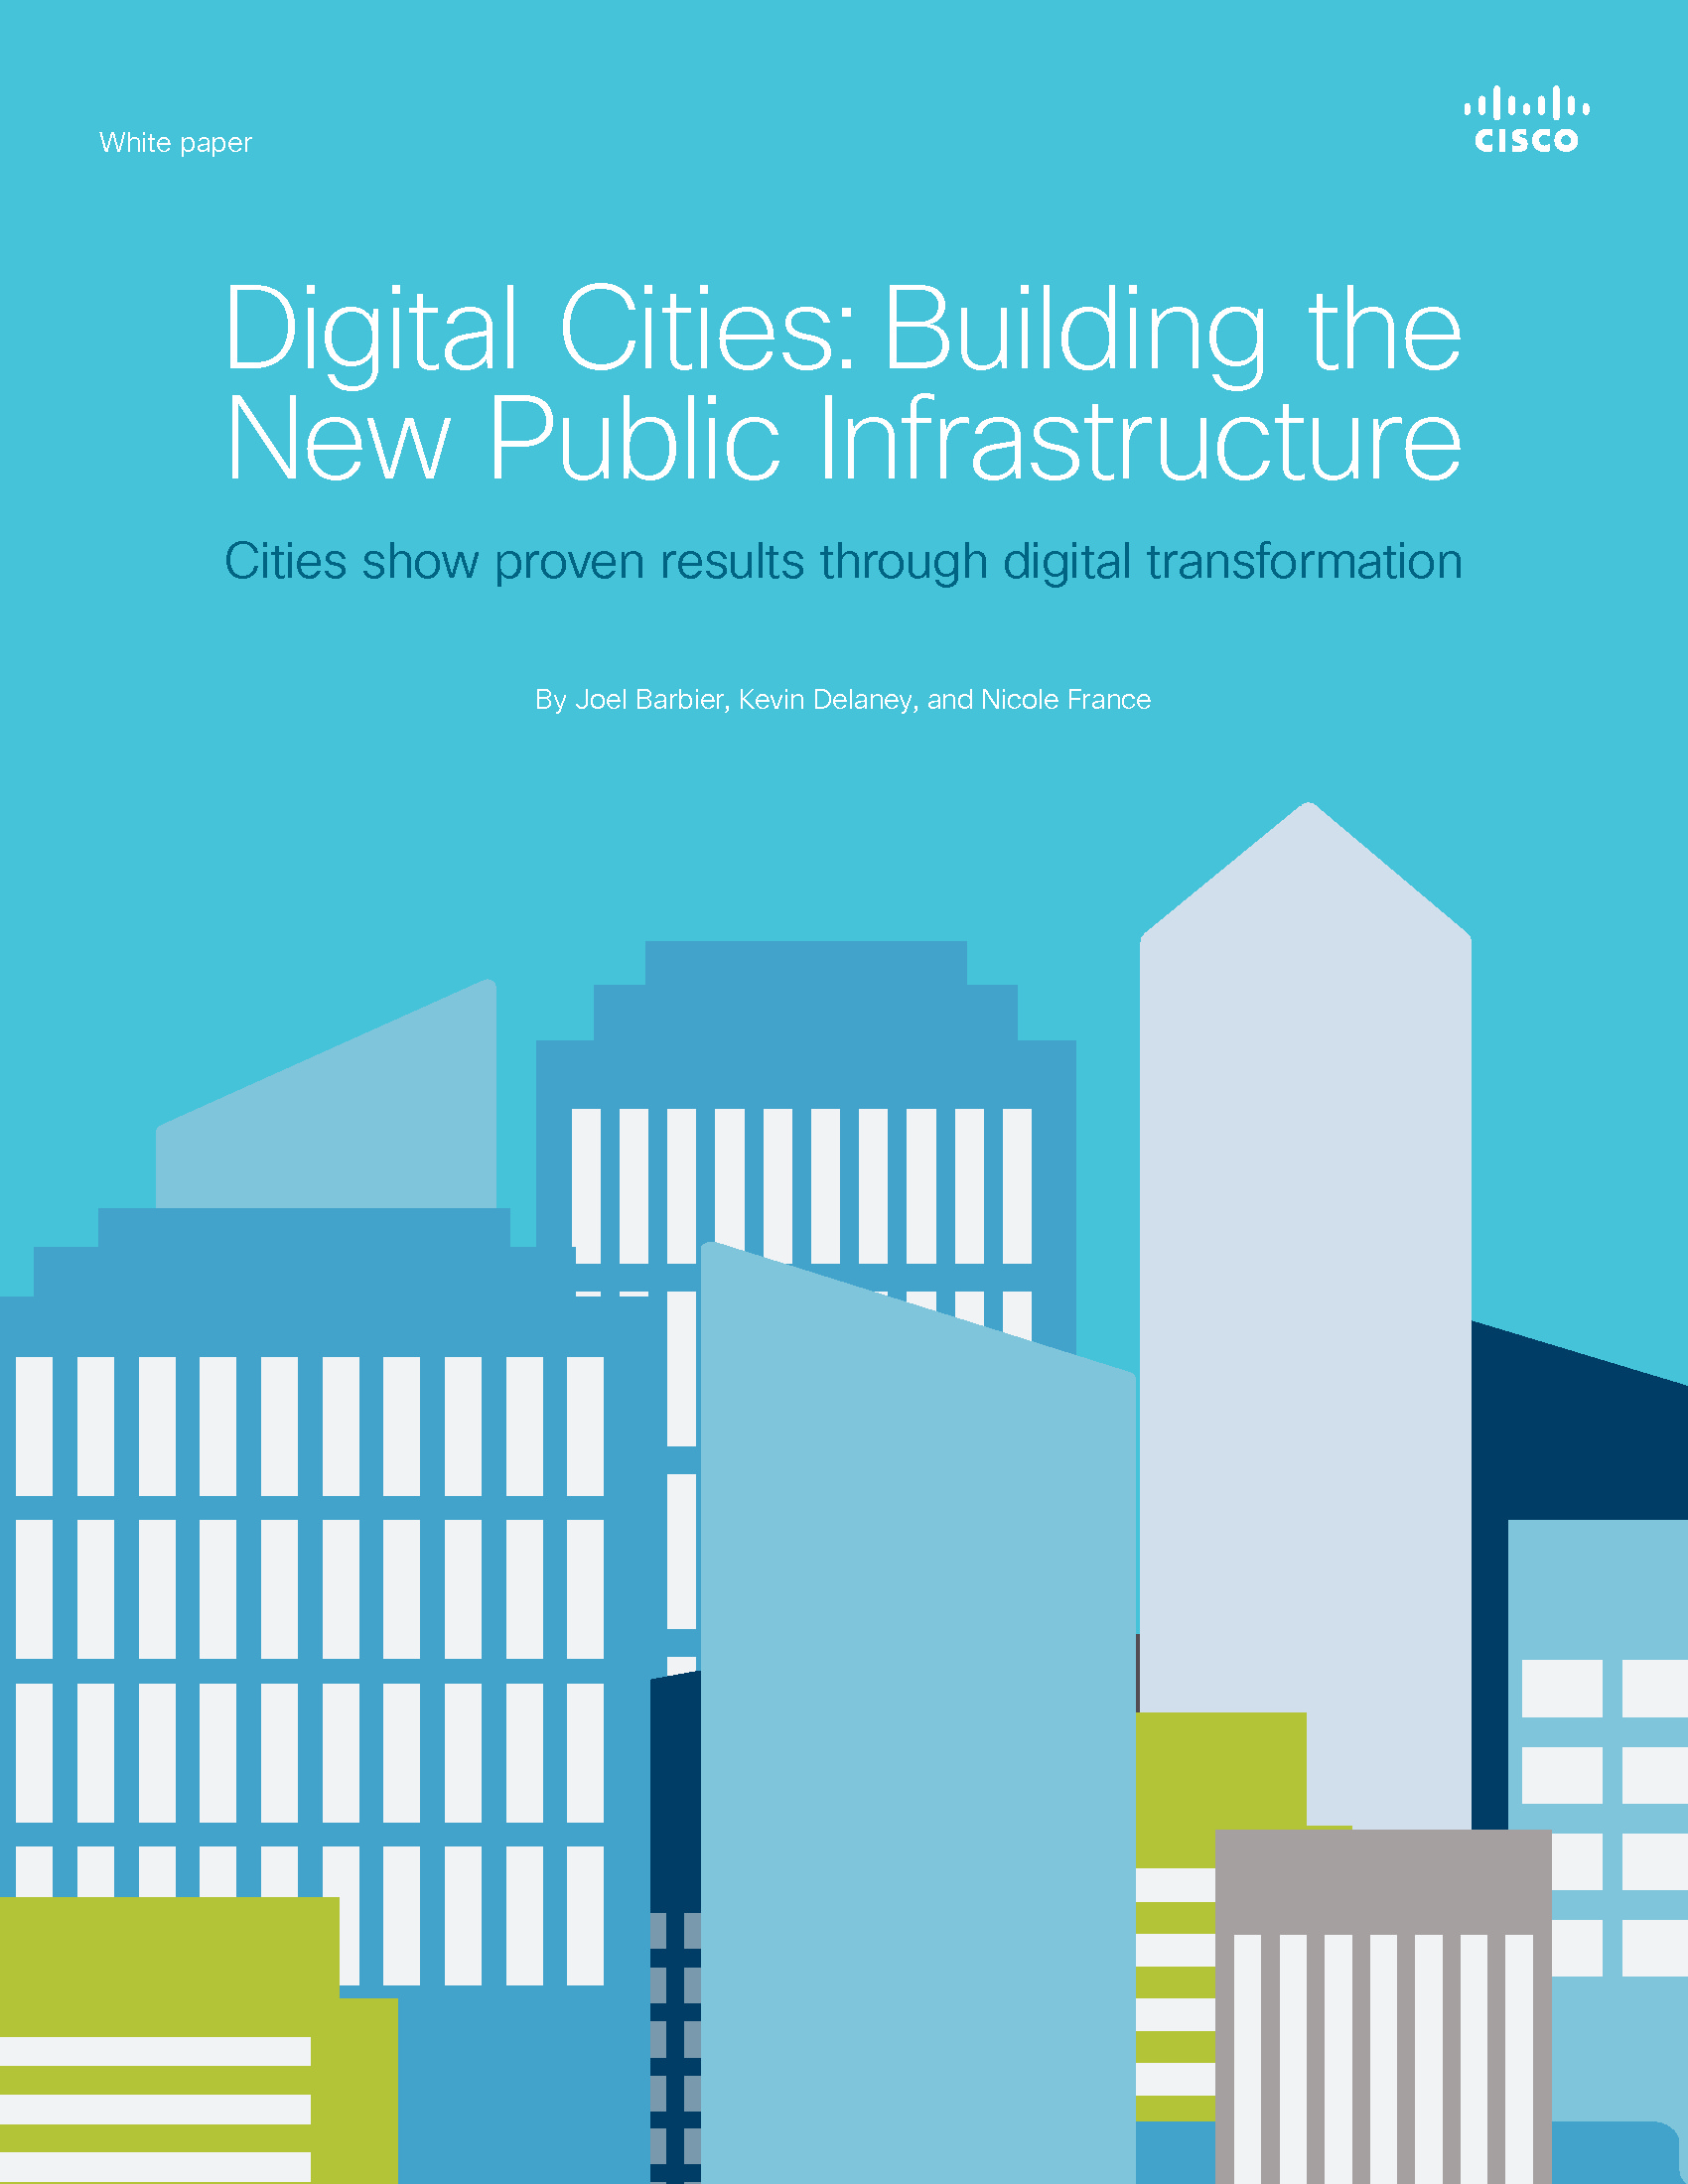 GT - Cisco - Smart Cities Microsite 2018 - Digital Cities